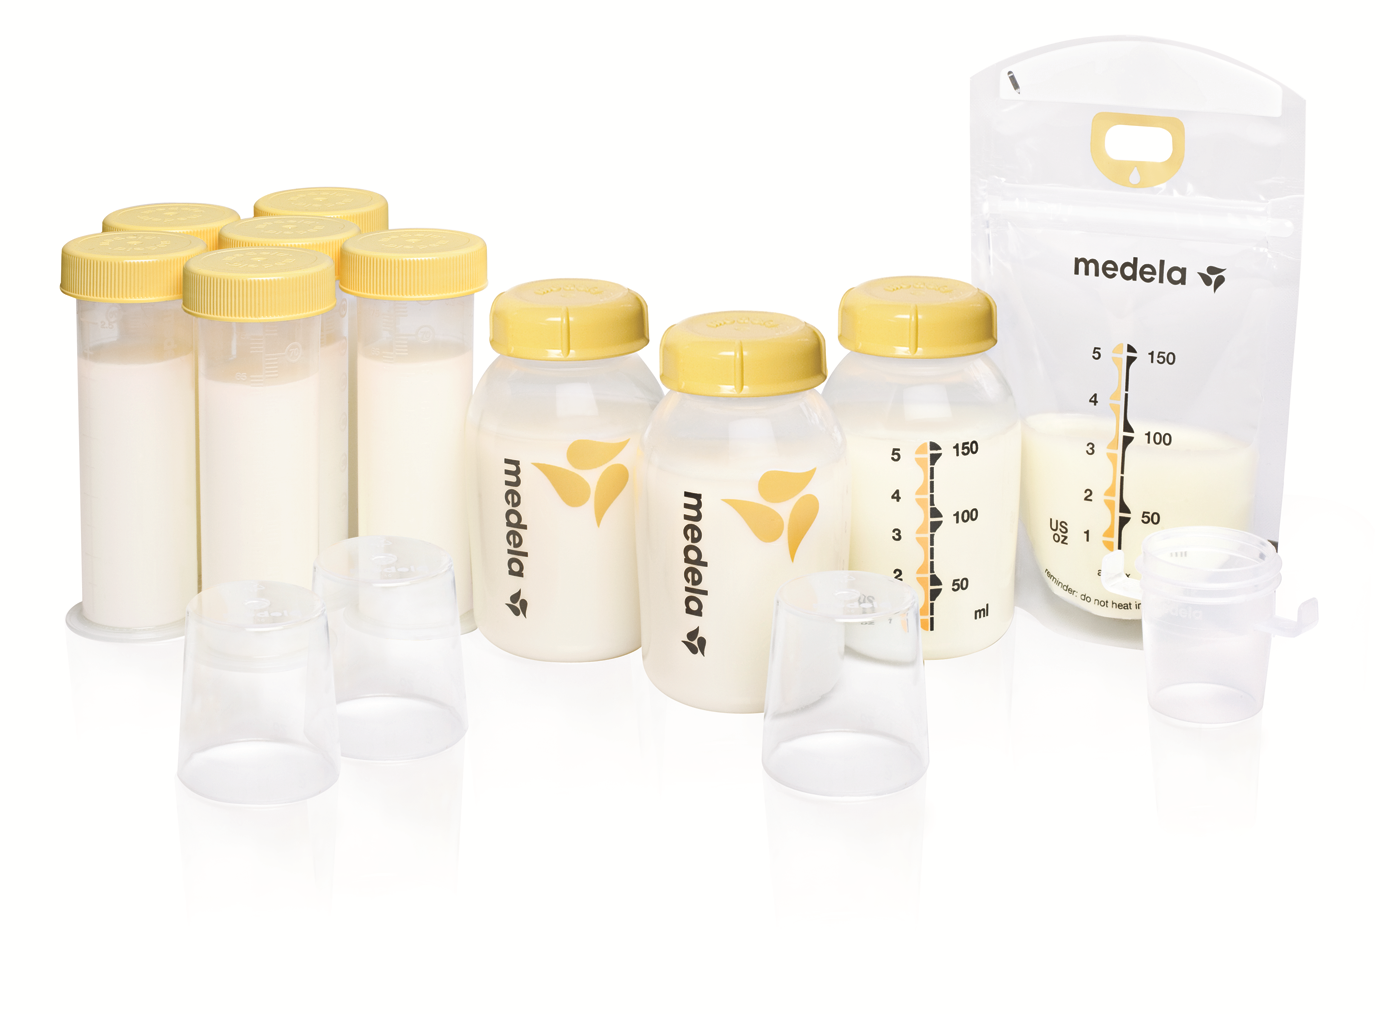 Medela breast milk feeding and storage set